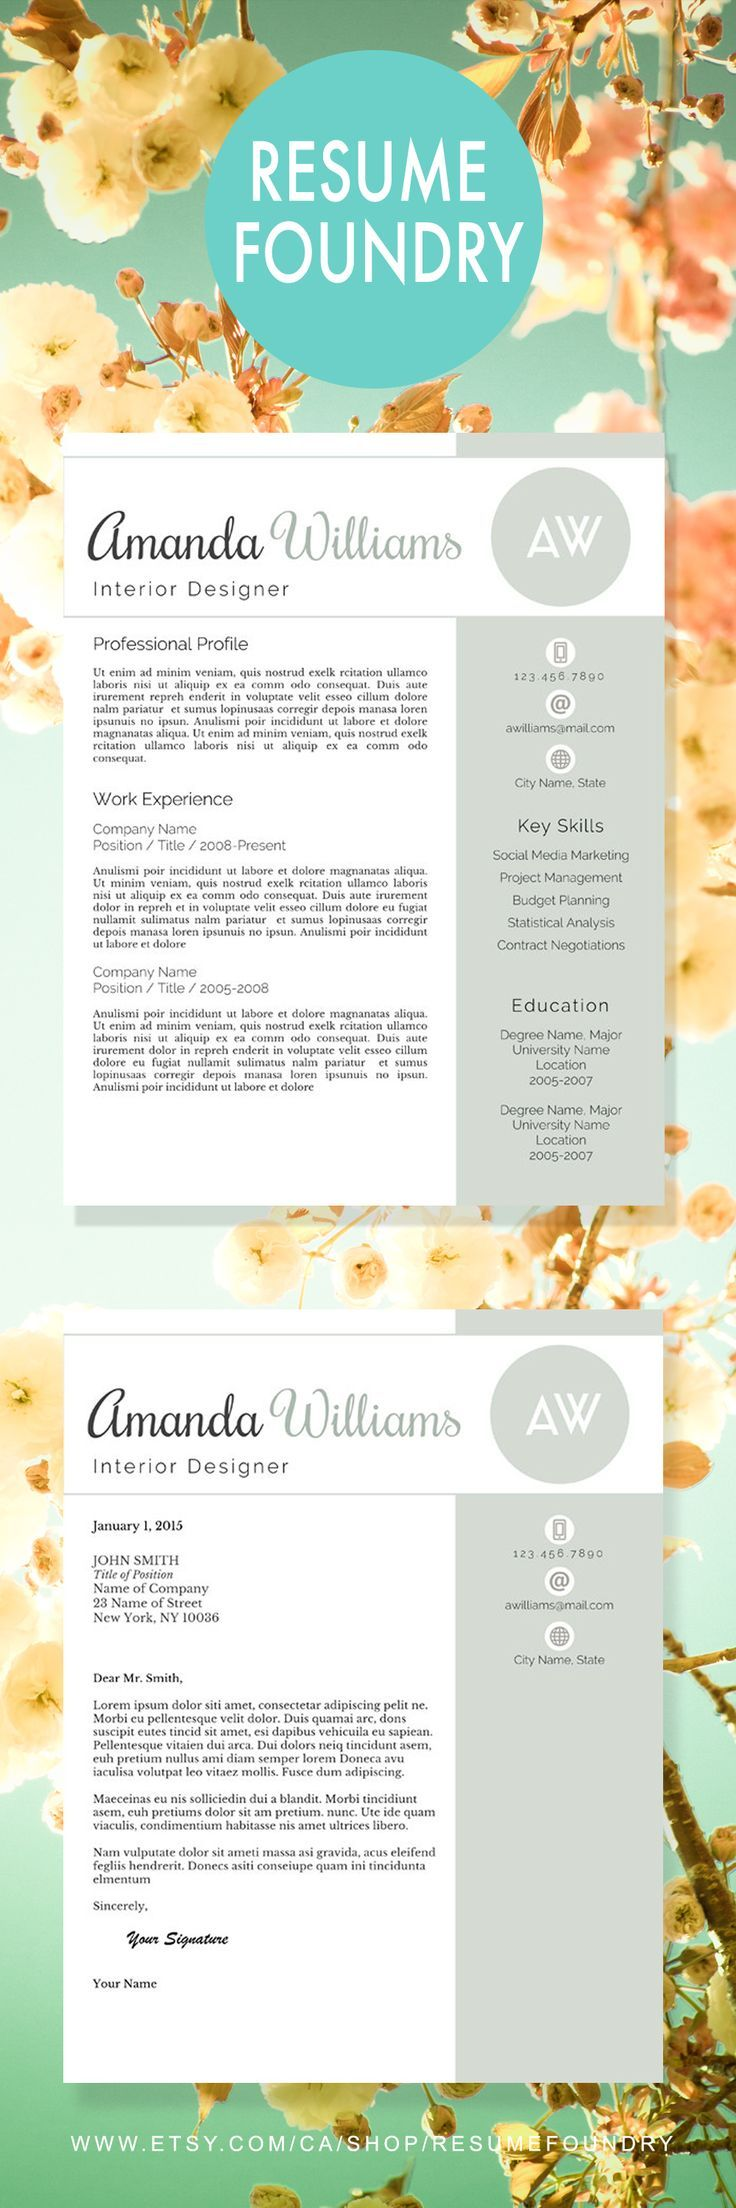 modern resume template the amanda